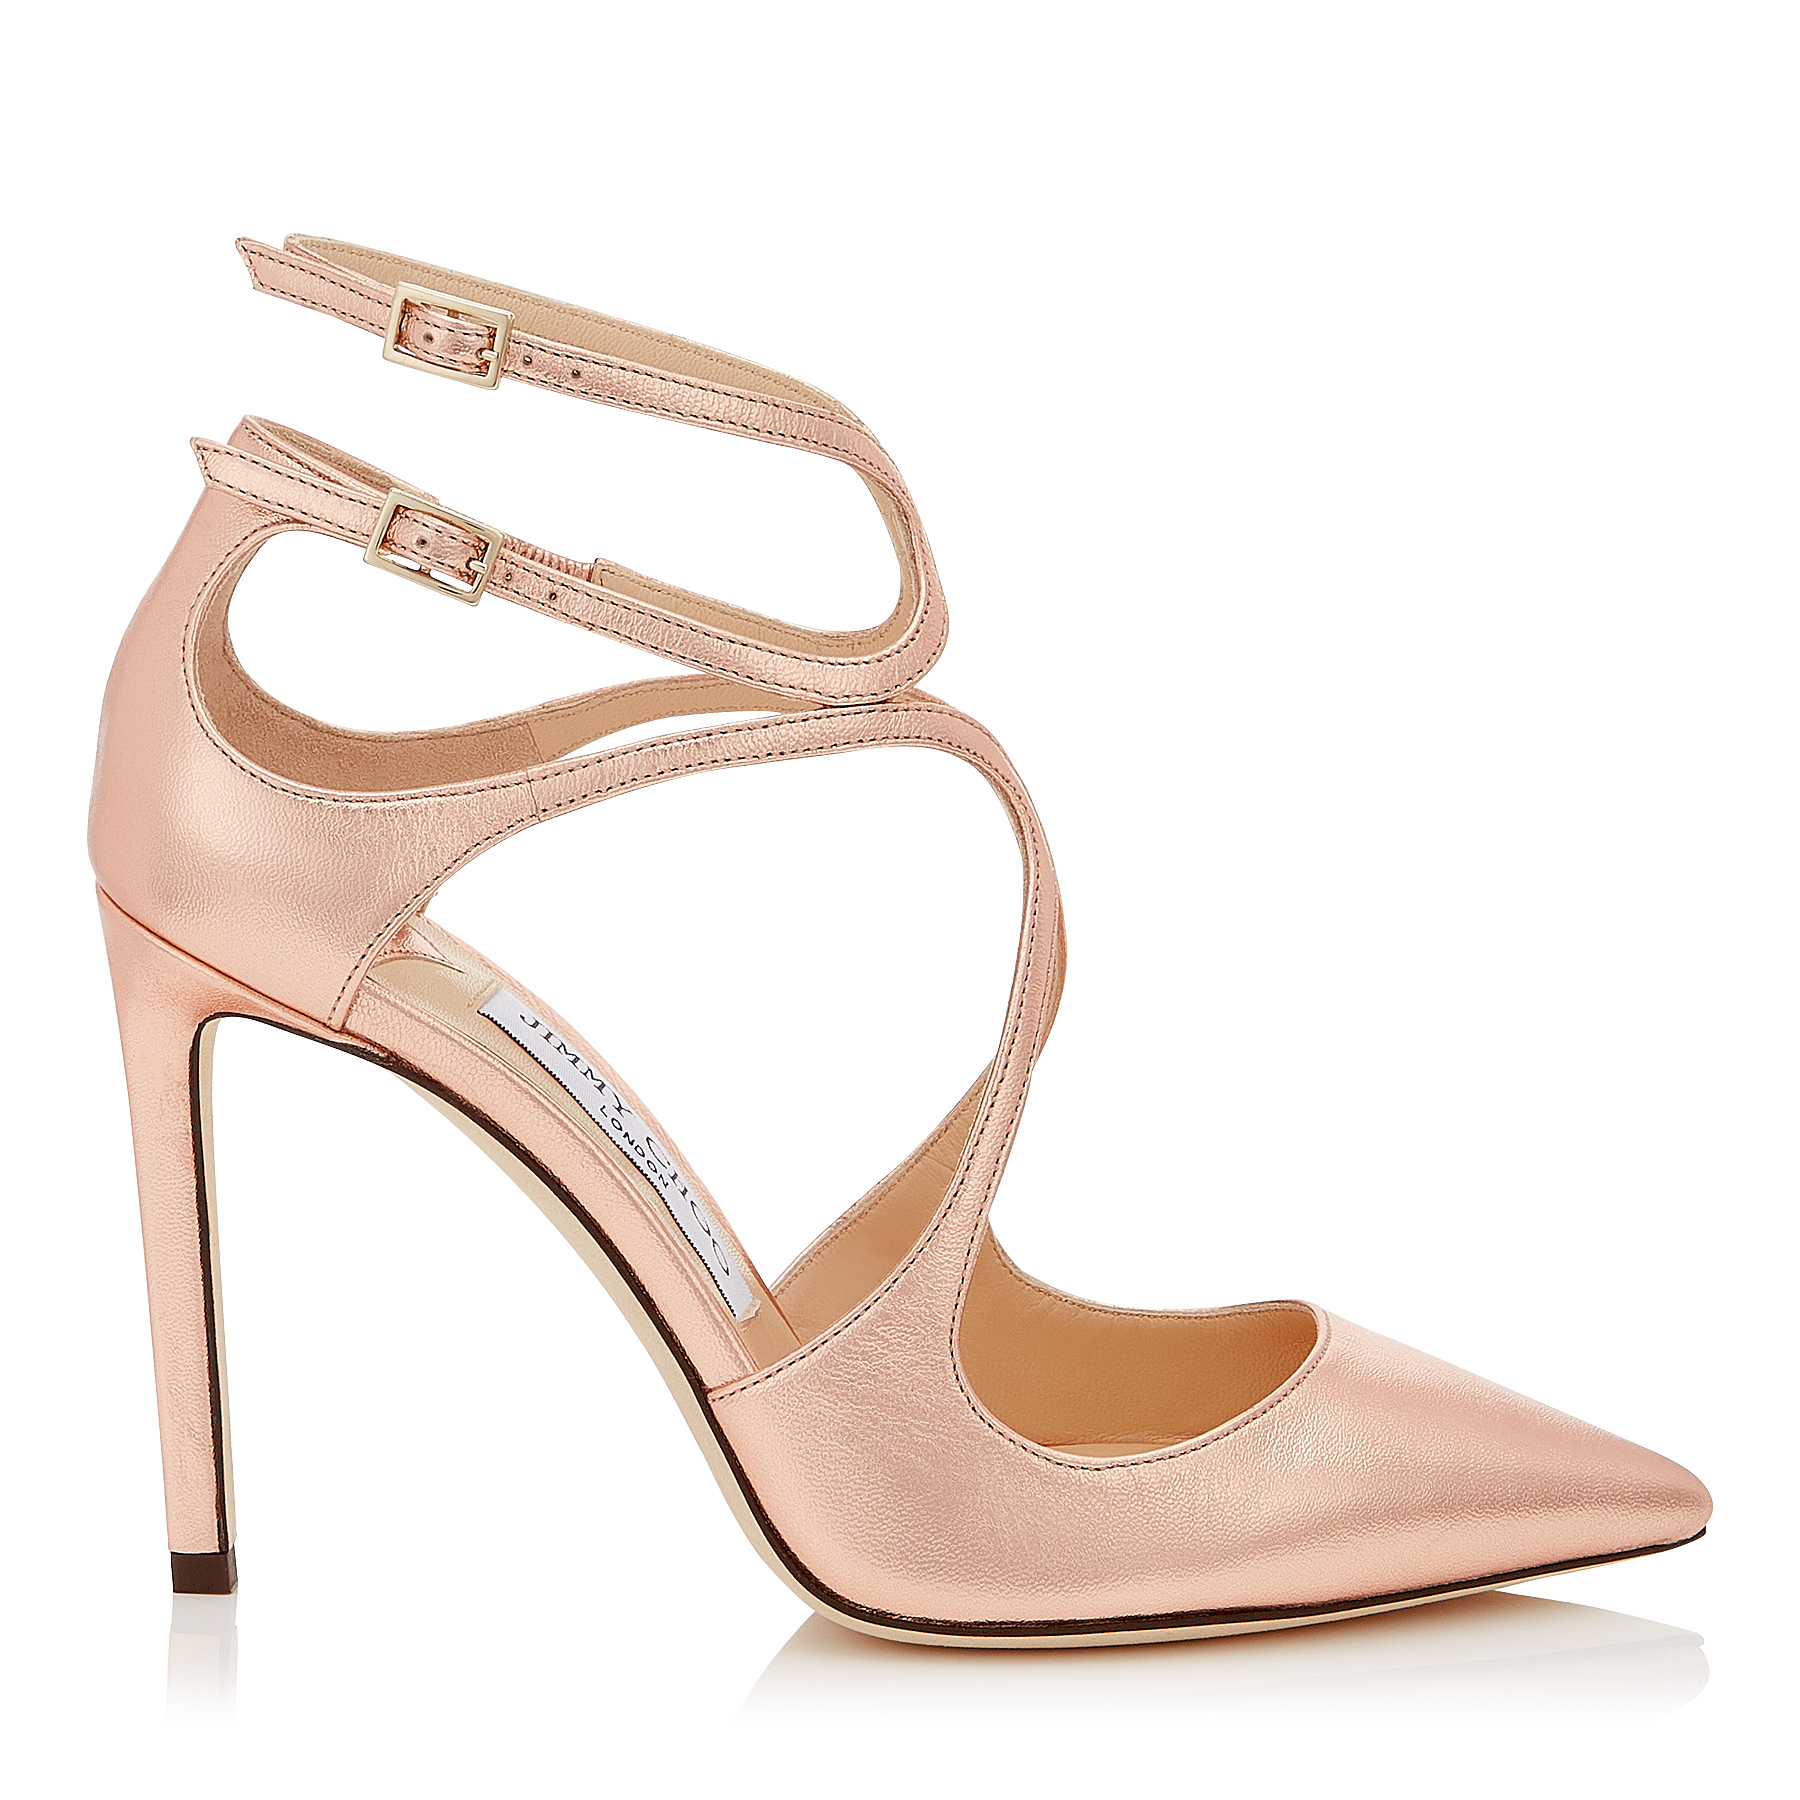 Photo of LANCER 100 Tea Rose Metallic Leather Pointy Toe Pumps by Jimmy Choo womens shoes - buy Jimmy Choo footwear online